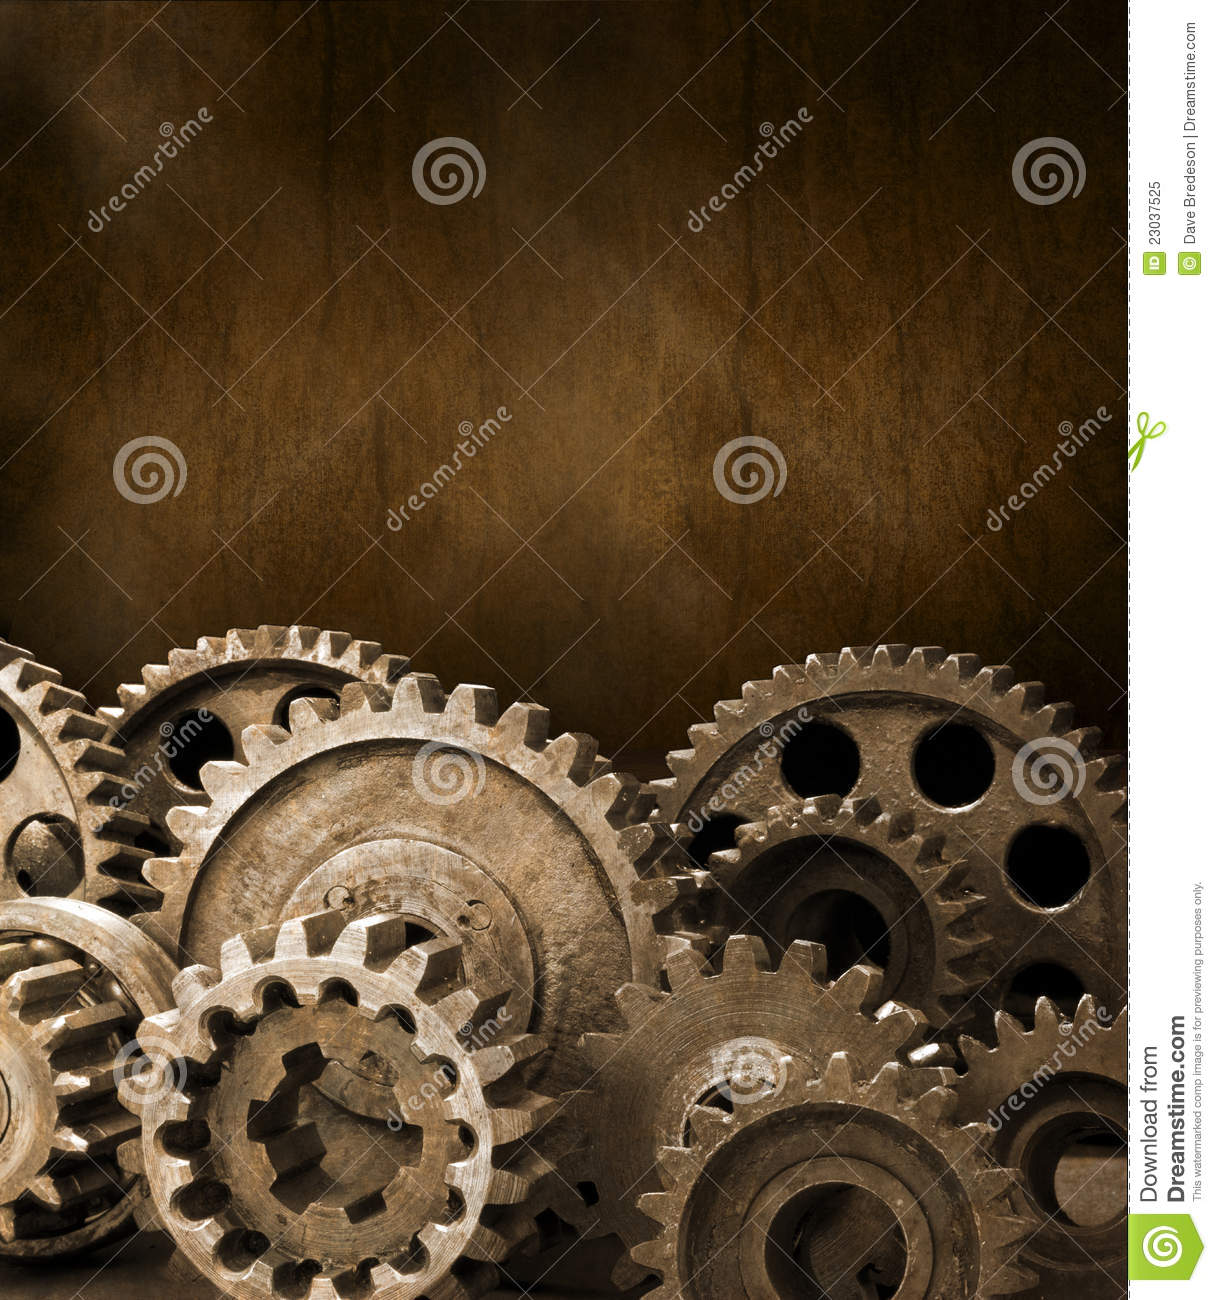 Cogs Gears Brown Background Royalty Free Stock Photo ...